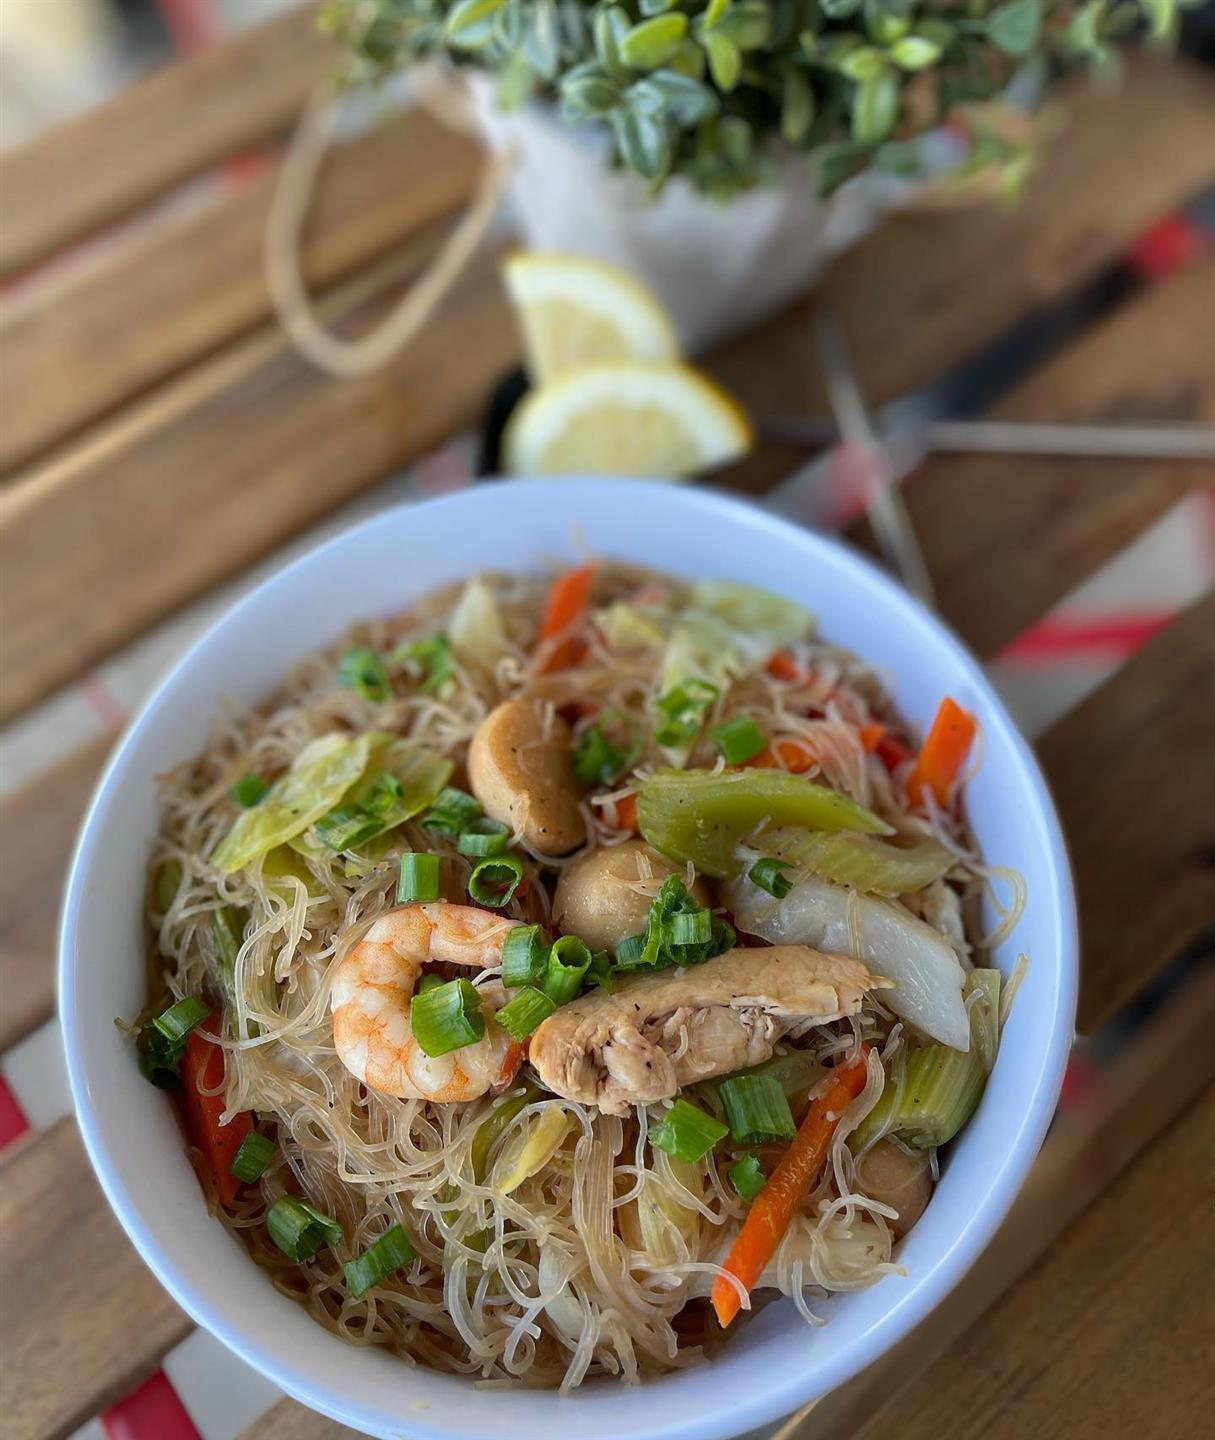 shrimp and vegetables in a thin rice noodle